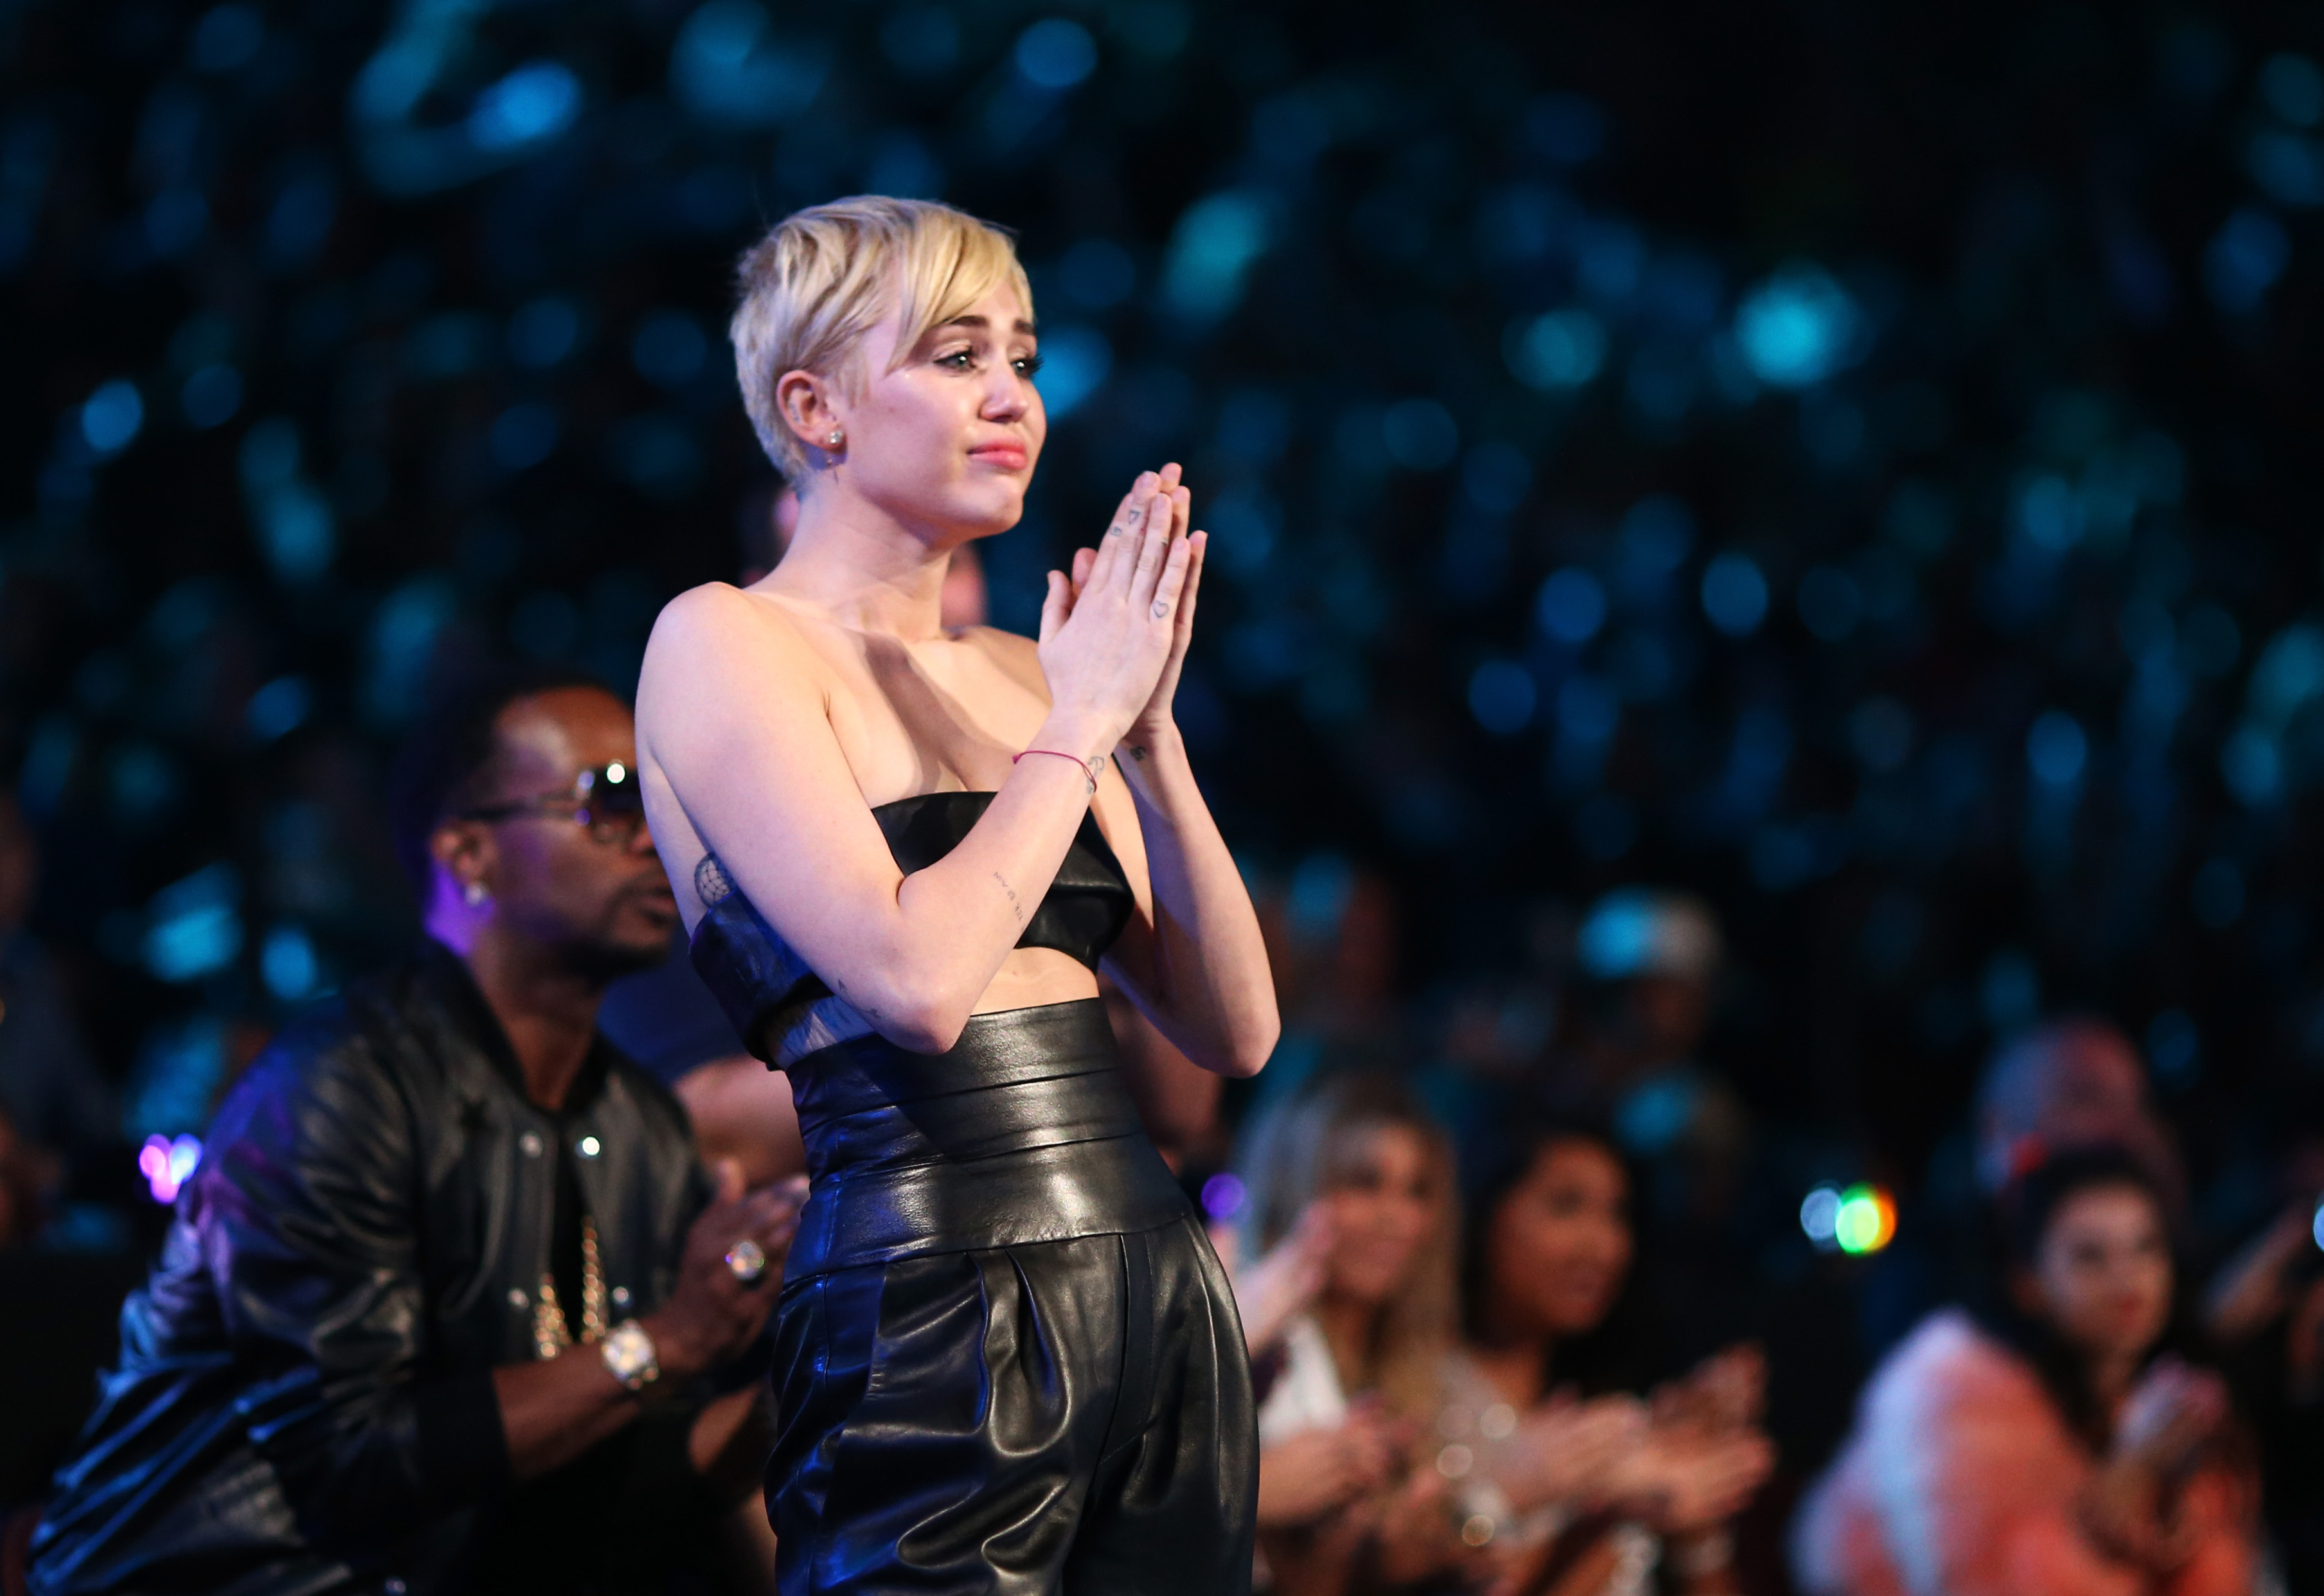 INGLEWOOD, CA - AUGUST 24:  Singer Miley Cyrus attends the 2014 MTV Video Music Awards at The Forum on August 24, 2014 in Ing